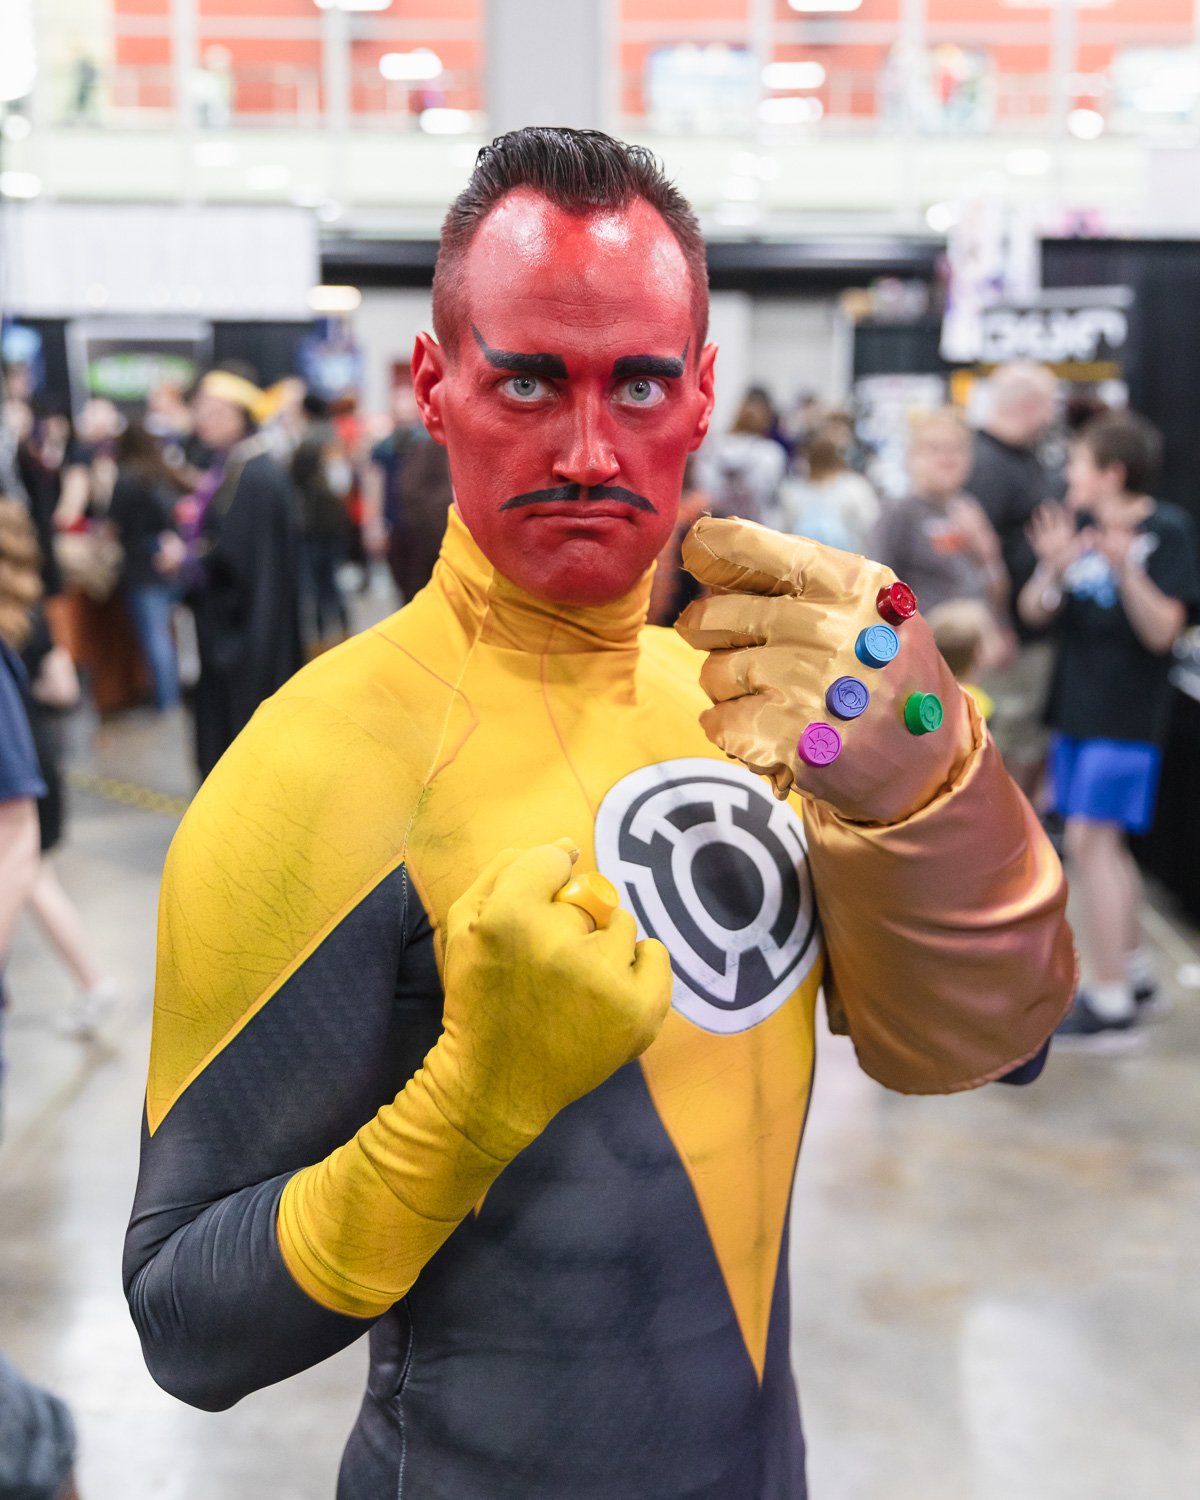 Matt Monson (@Maddmatter) cosplaying as the Green Lantern villain Sinestro at FanX19. Photo: @Lmsorenson